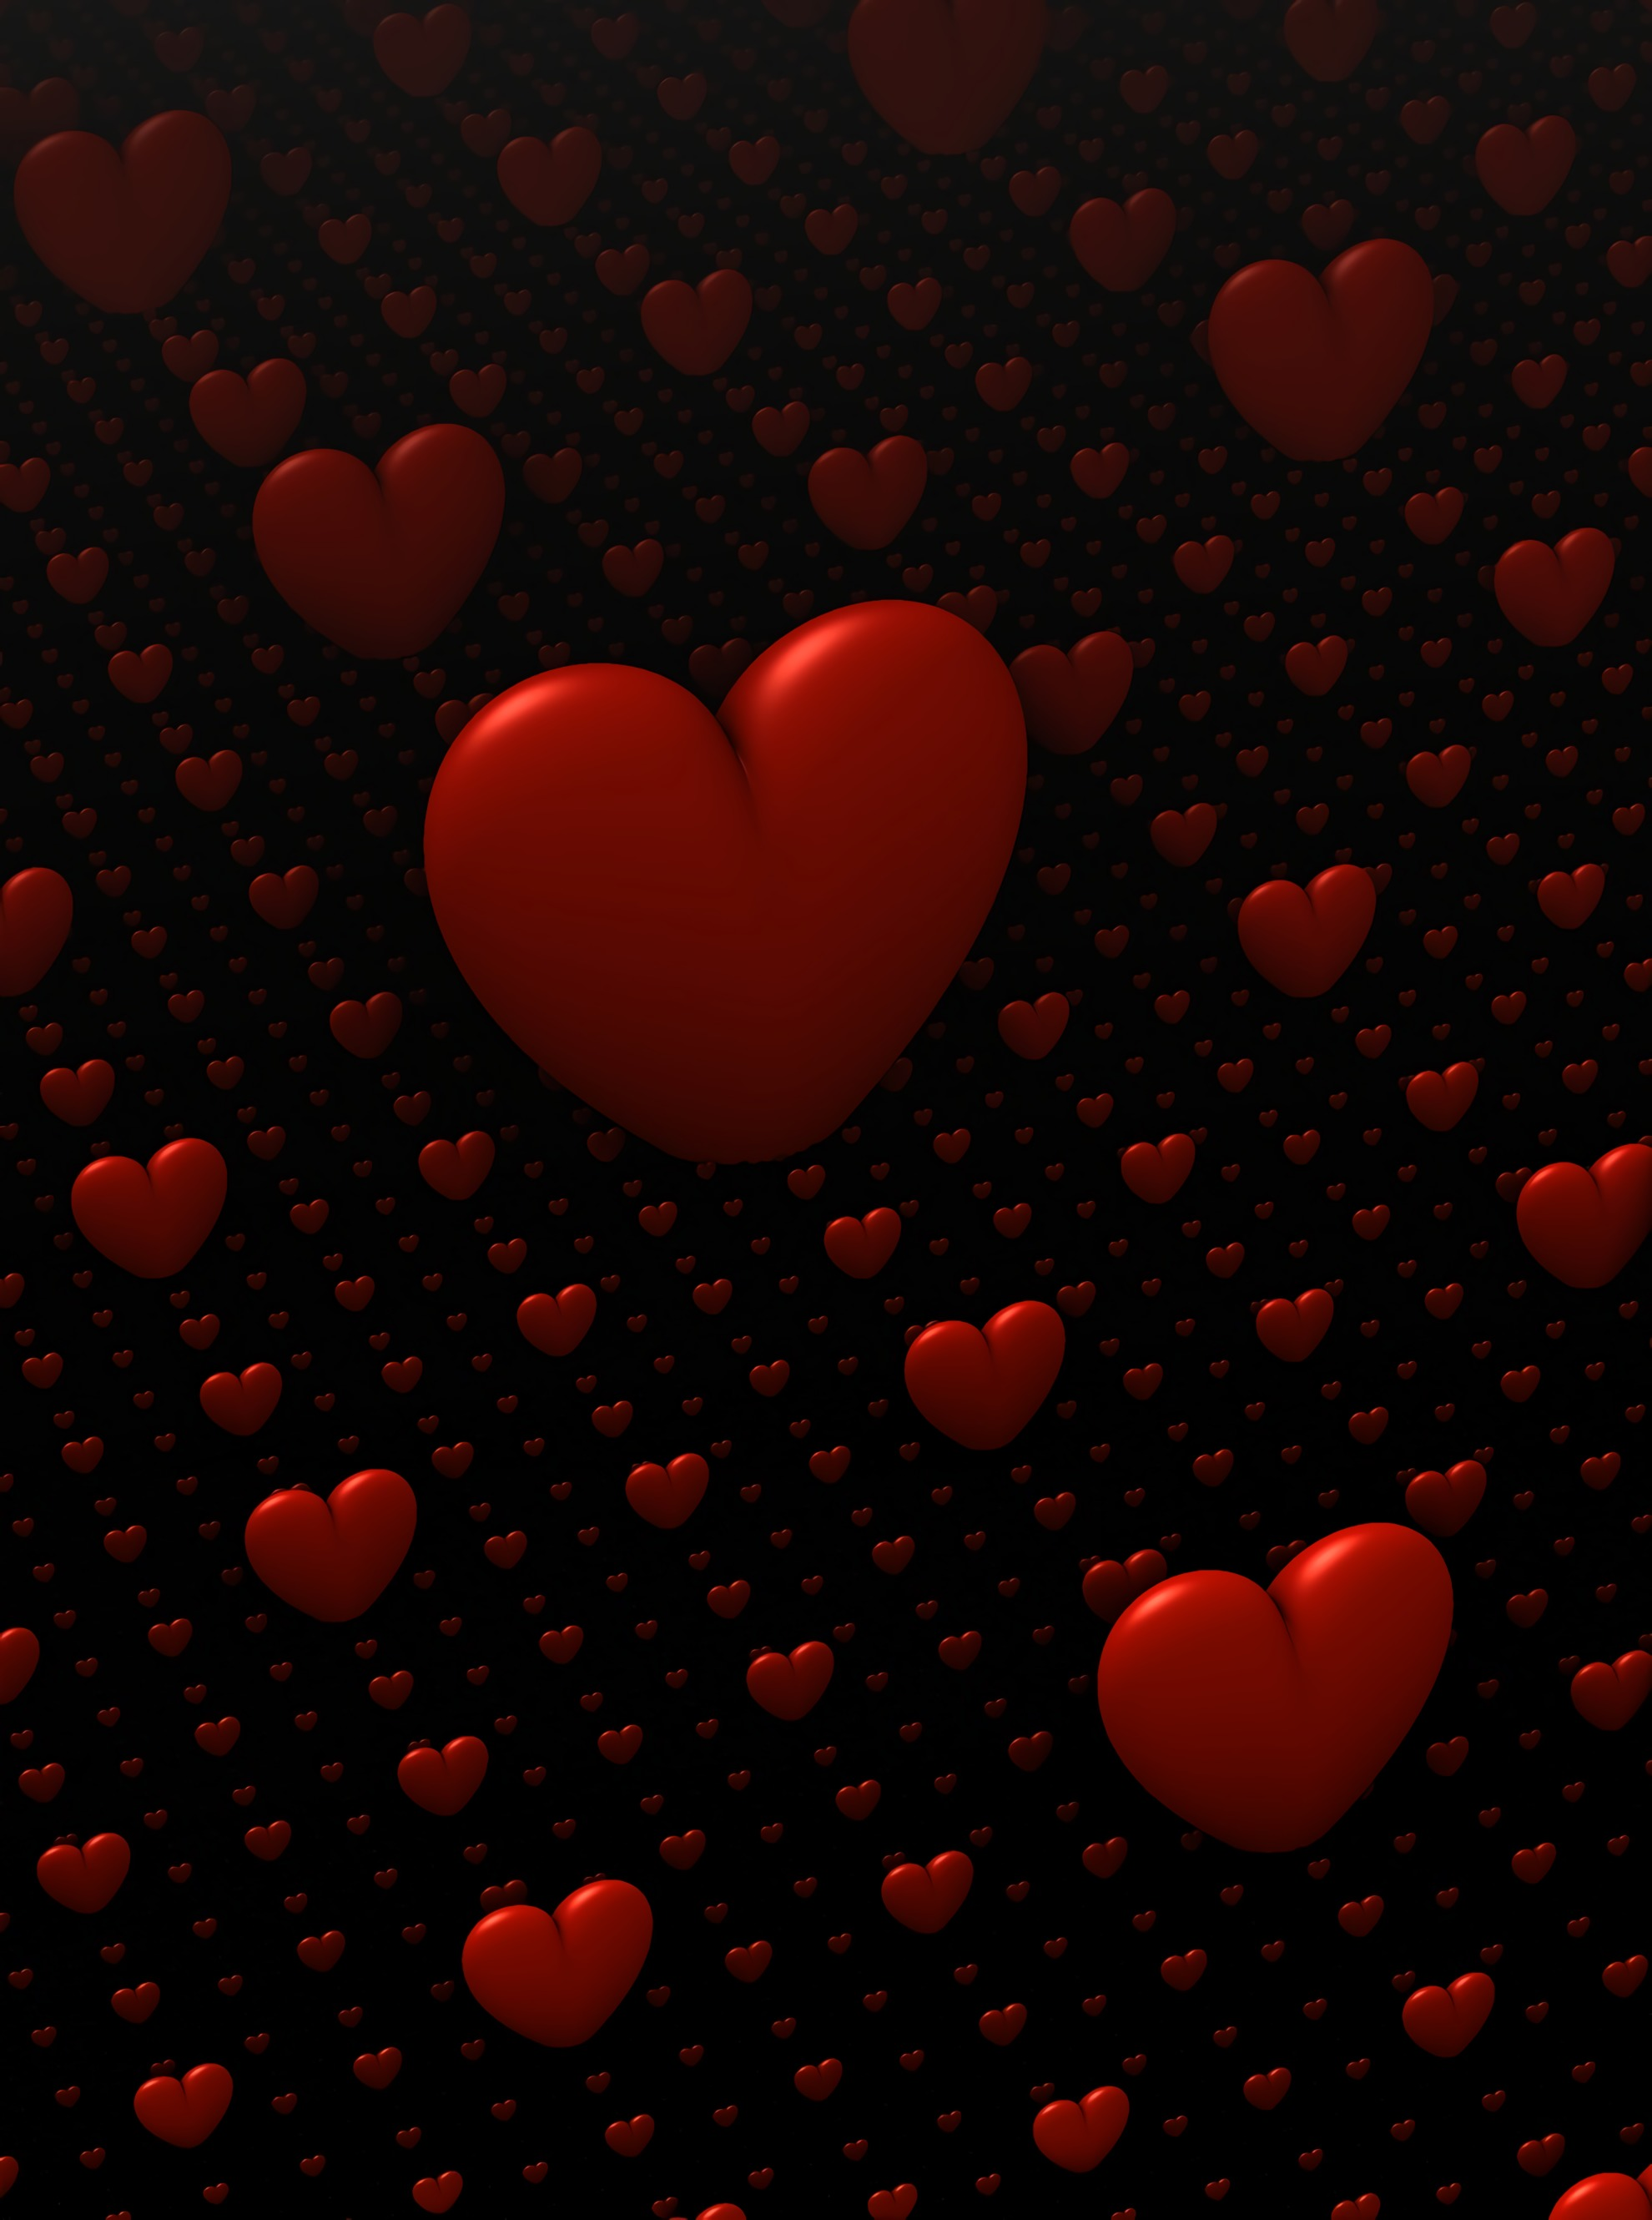 73181 download wallpaper 3D, Love, Hearts screensavers and pictures for free